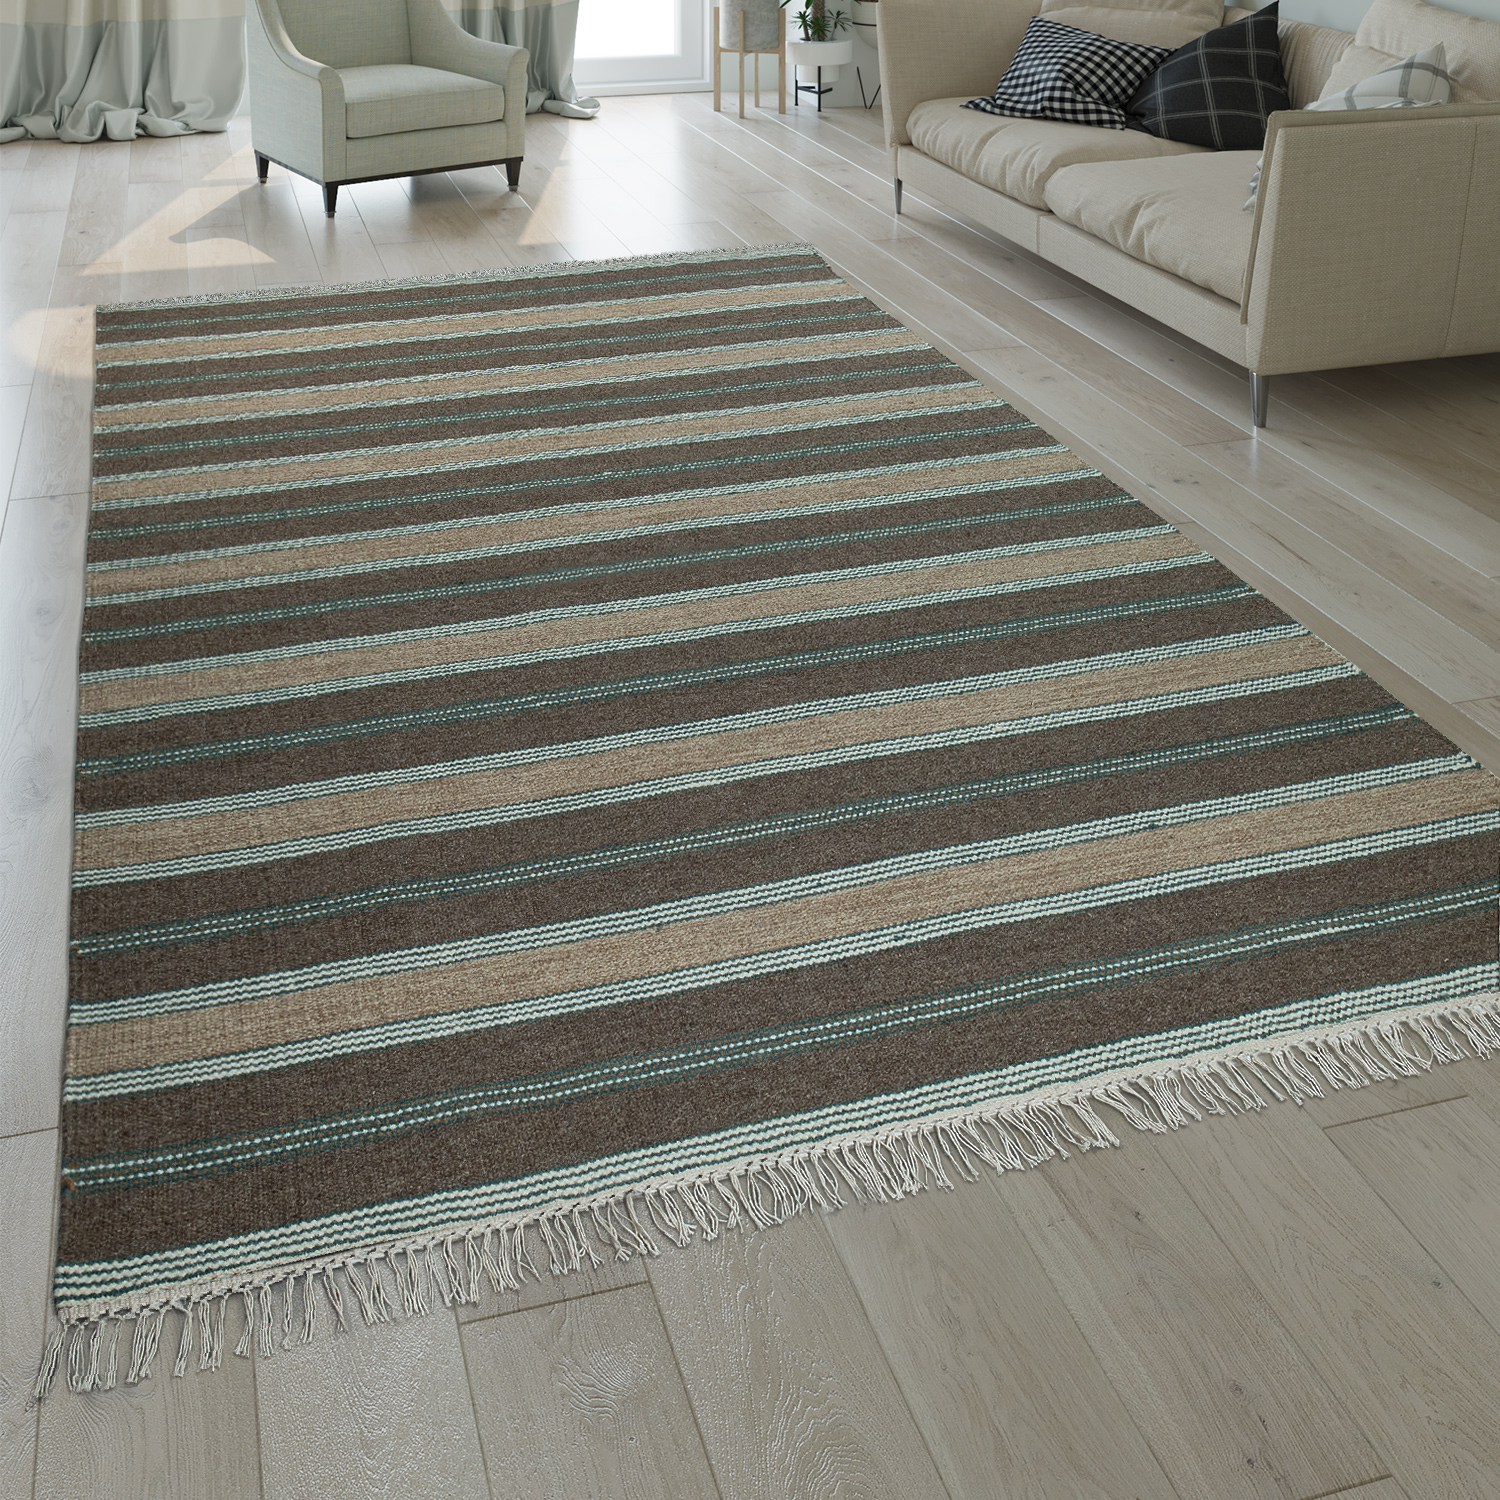 Hand-Woven Kilim Rug Striped Design High Quality With Fringes In Beige